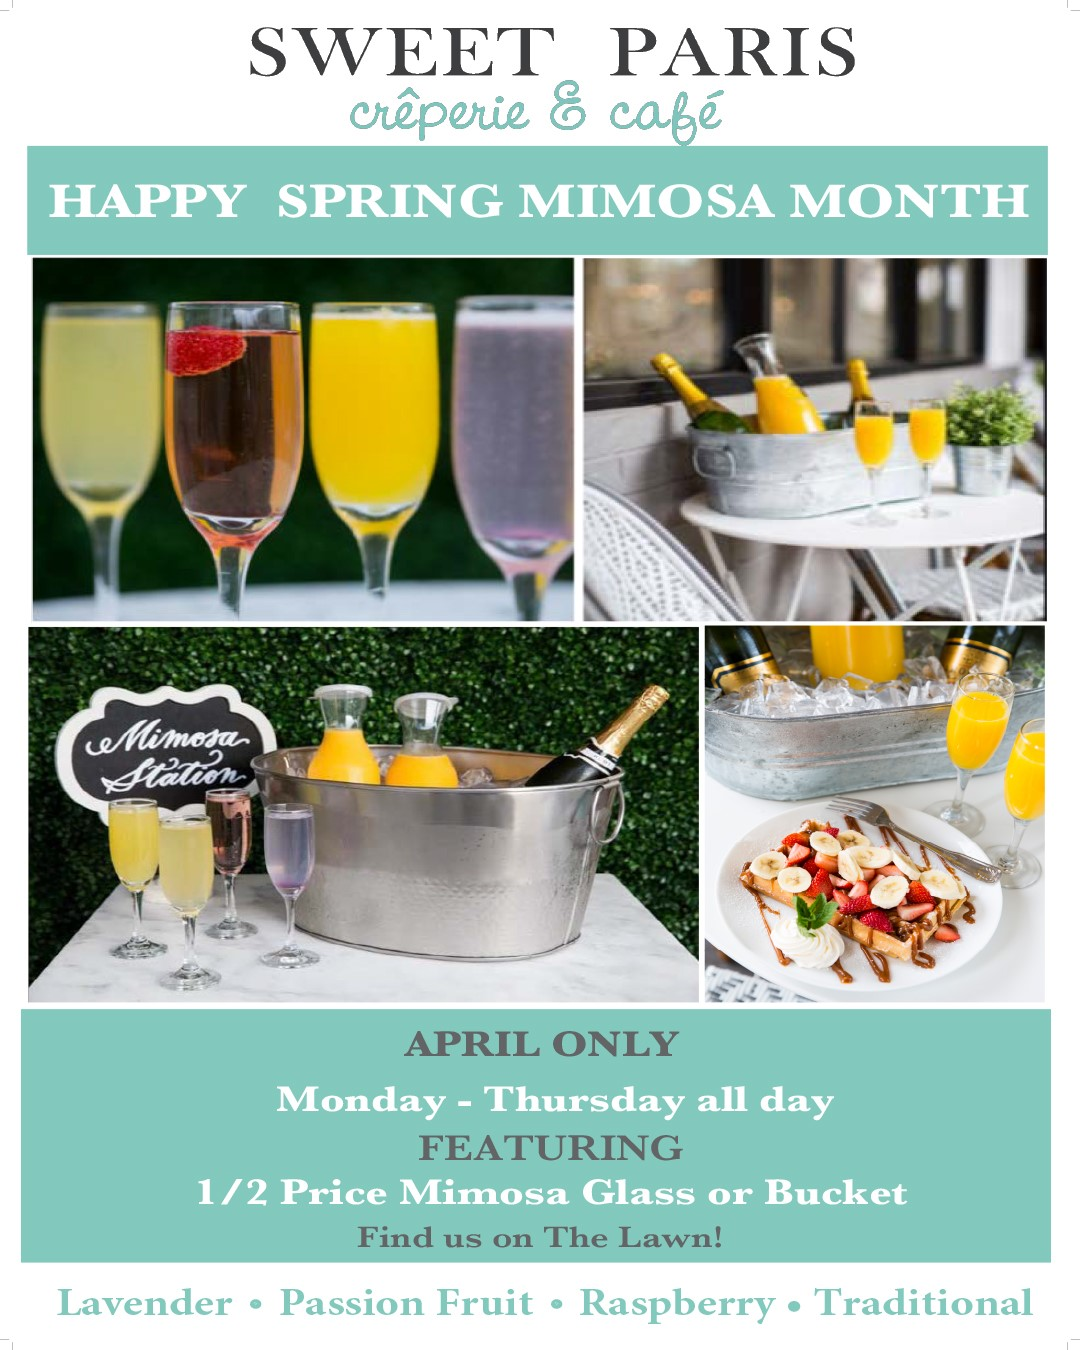 Happy Spring Mimosa Month